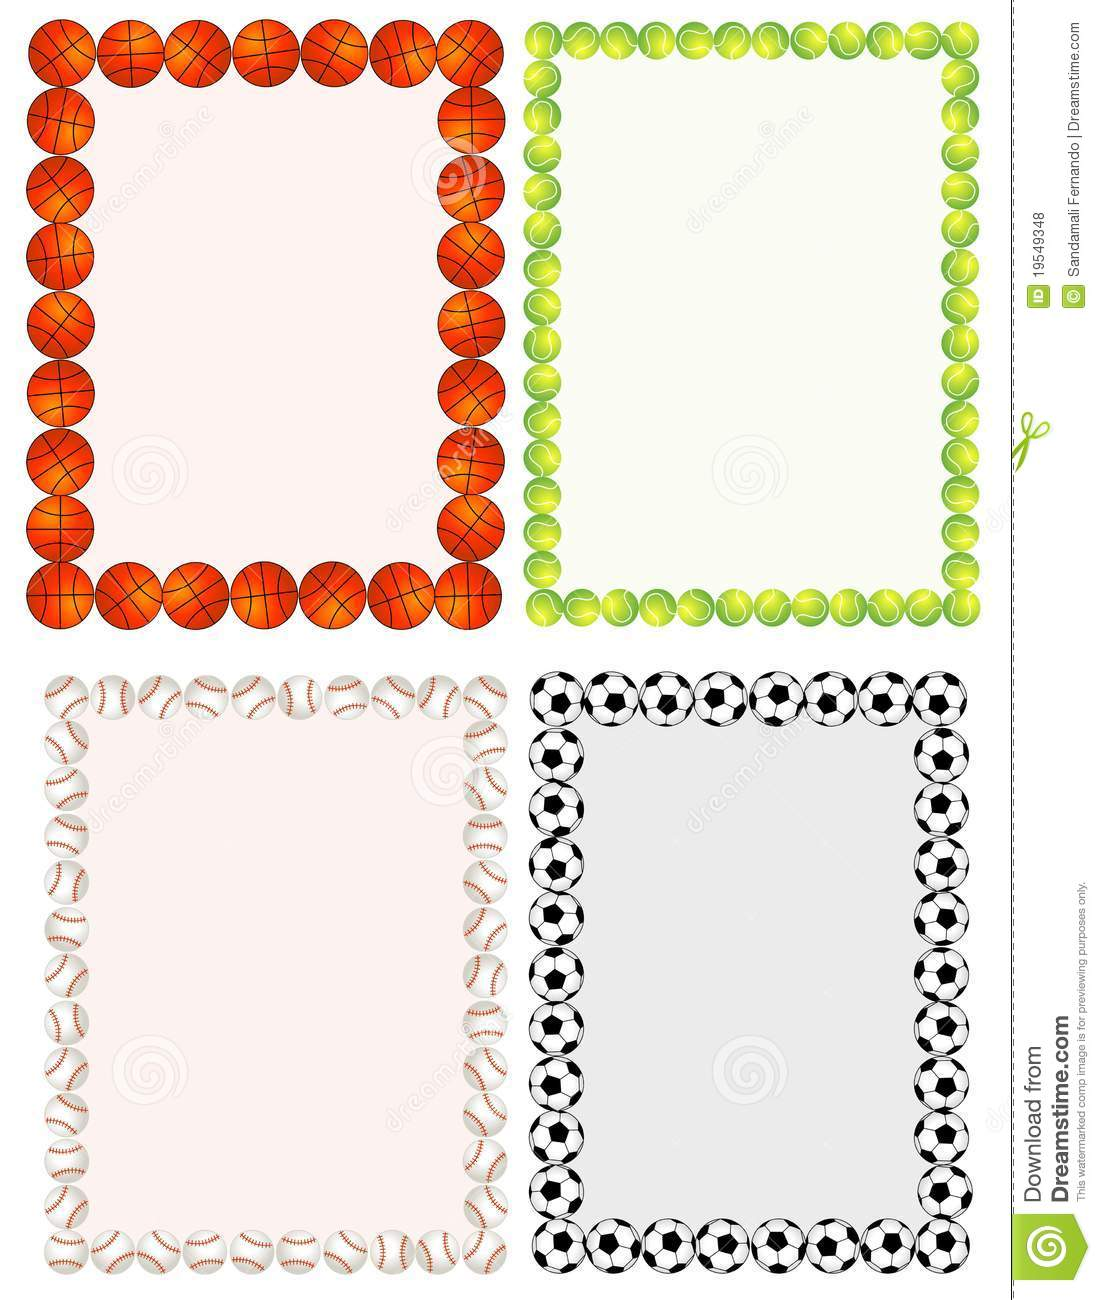 sport balls stock vector image of invitation  balls 19549348 dodgeball clipart images Dodgeball Tournament Clip Art